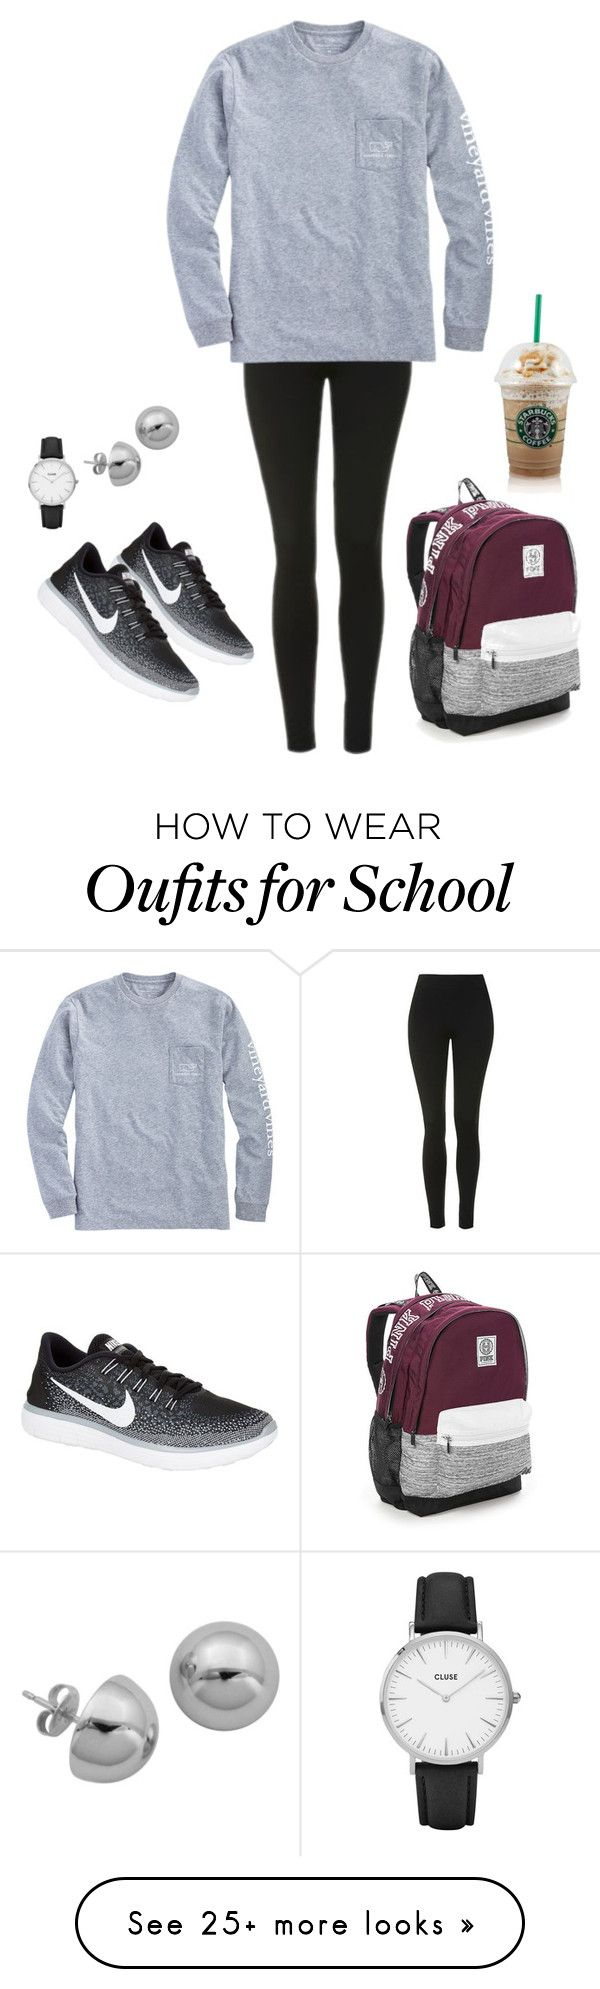 """lazy day at school but still wanna look cute lol"" by jessicamariejms on Polyvore featuring Topshop, Vineyard Vines, NIKE, CLUSE, Lord & Taylor and Victoria's Secret"